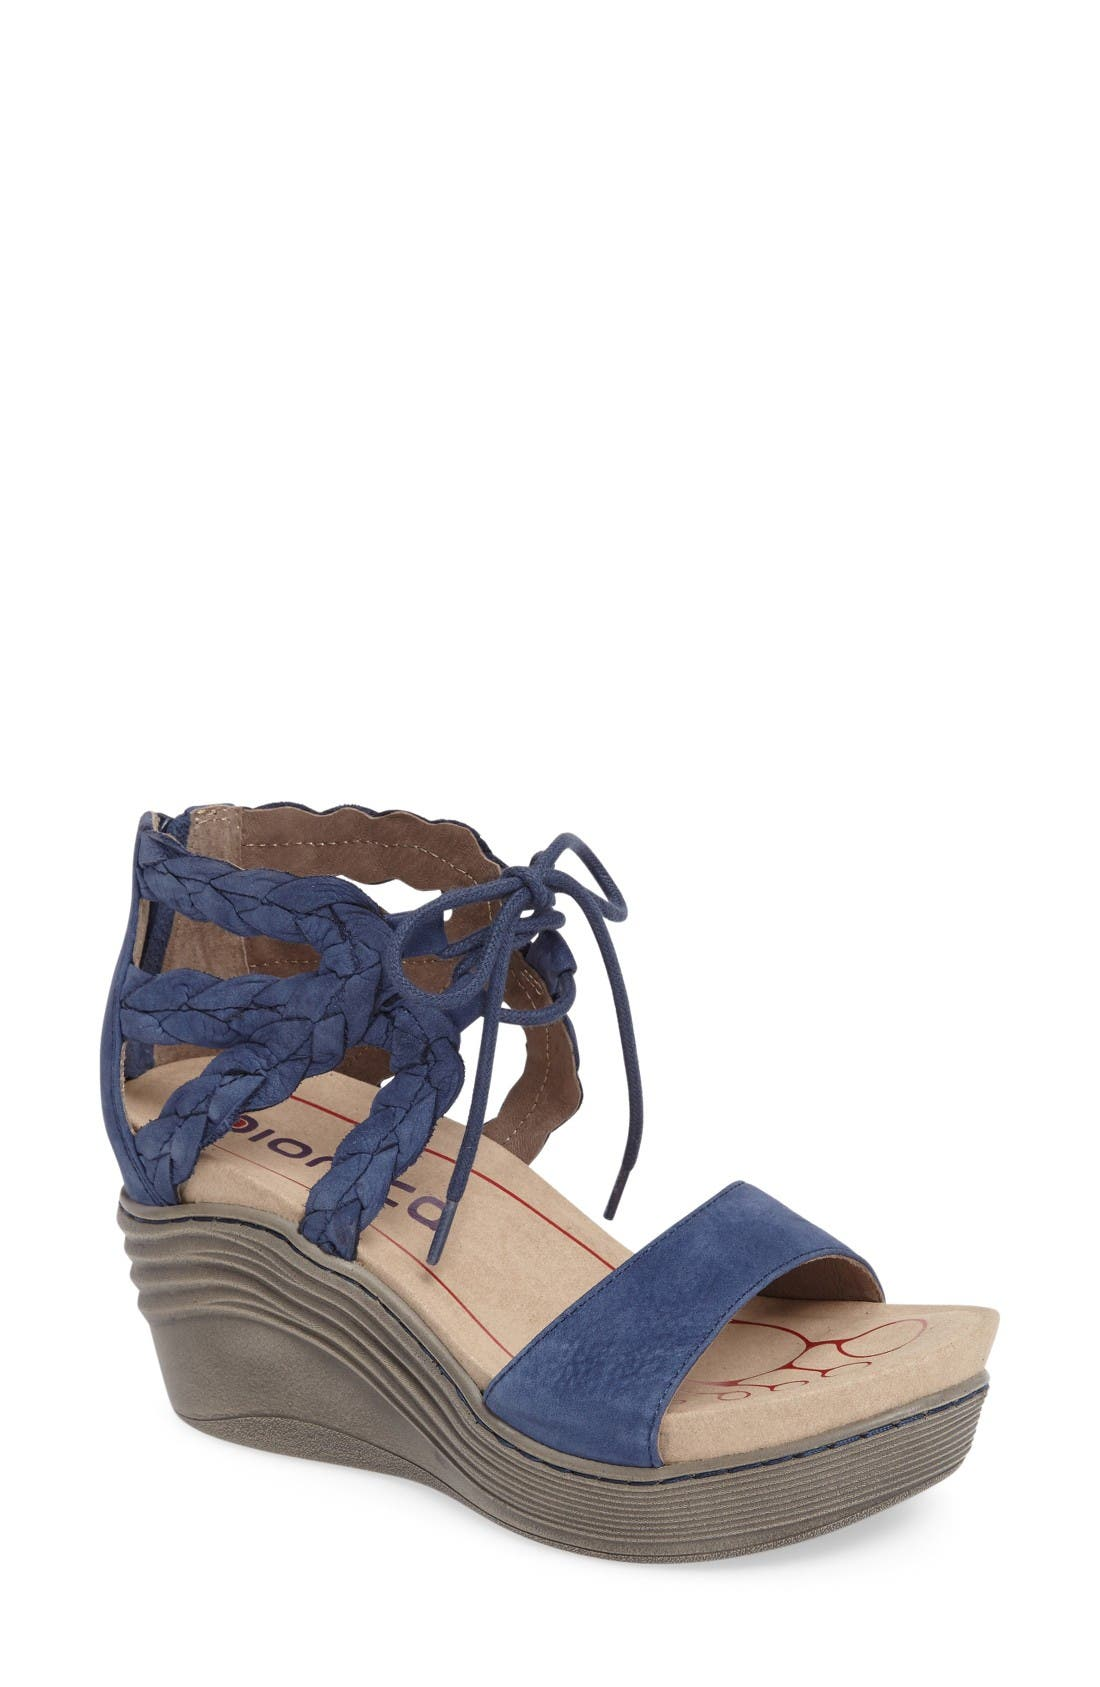 bionica Sunset Sandal (Women)